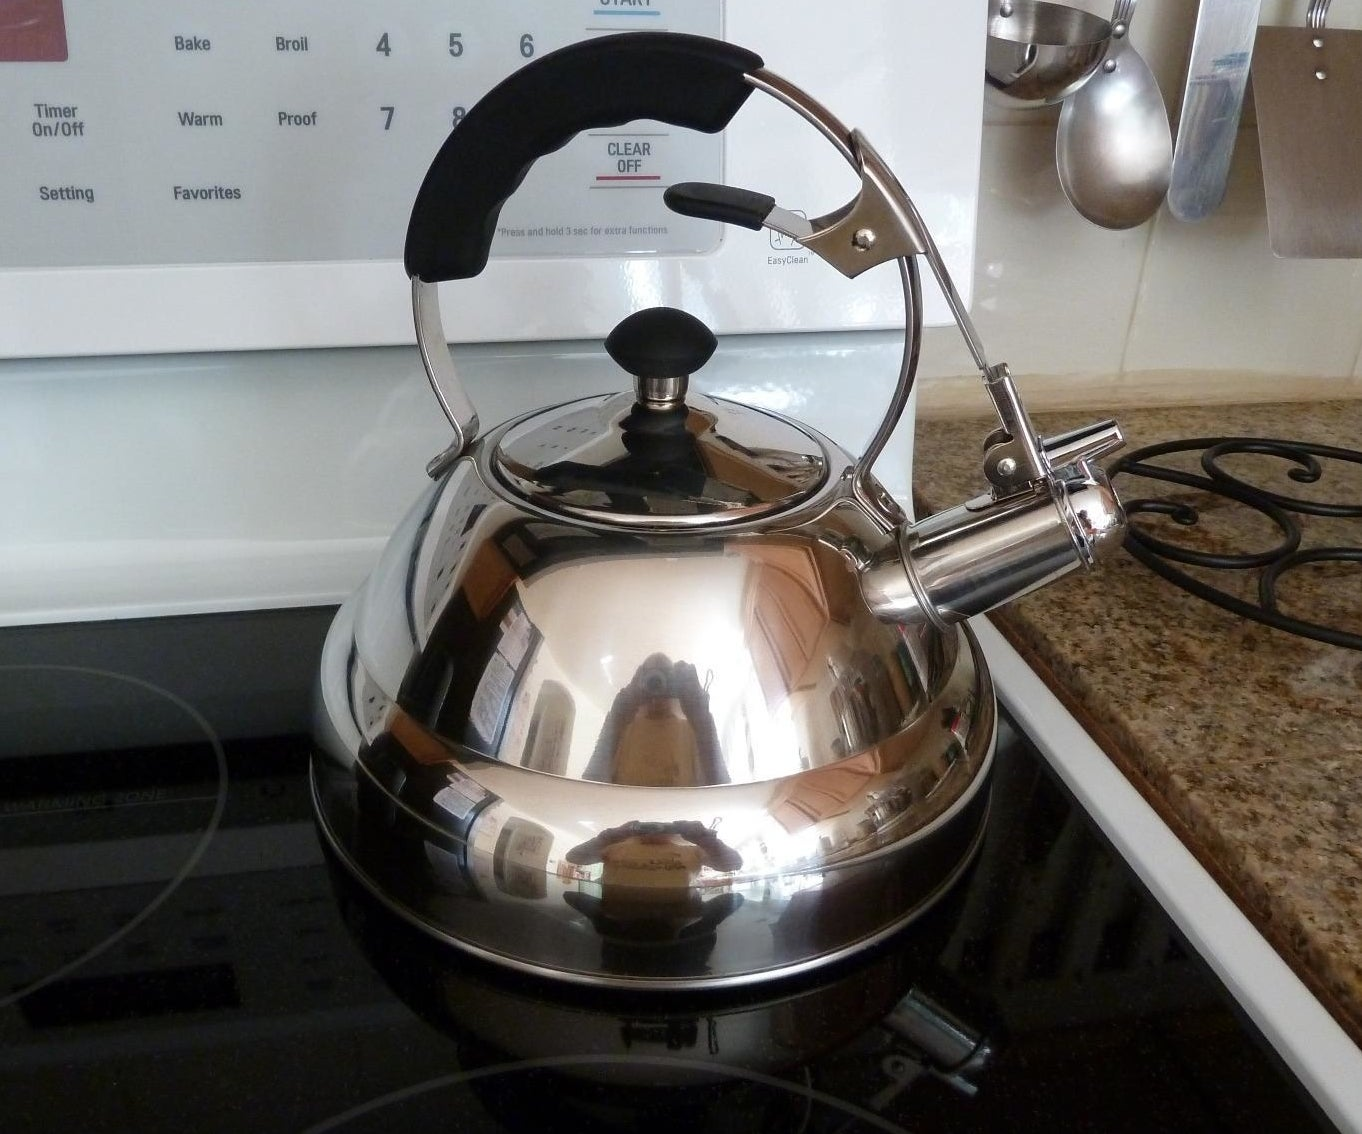 A reviewer's photo of a shiny metallic tea kettle sitting atop an electric range